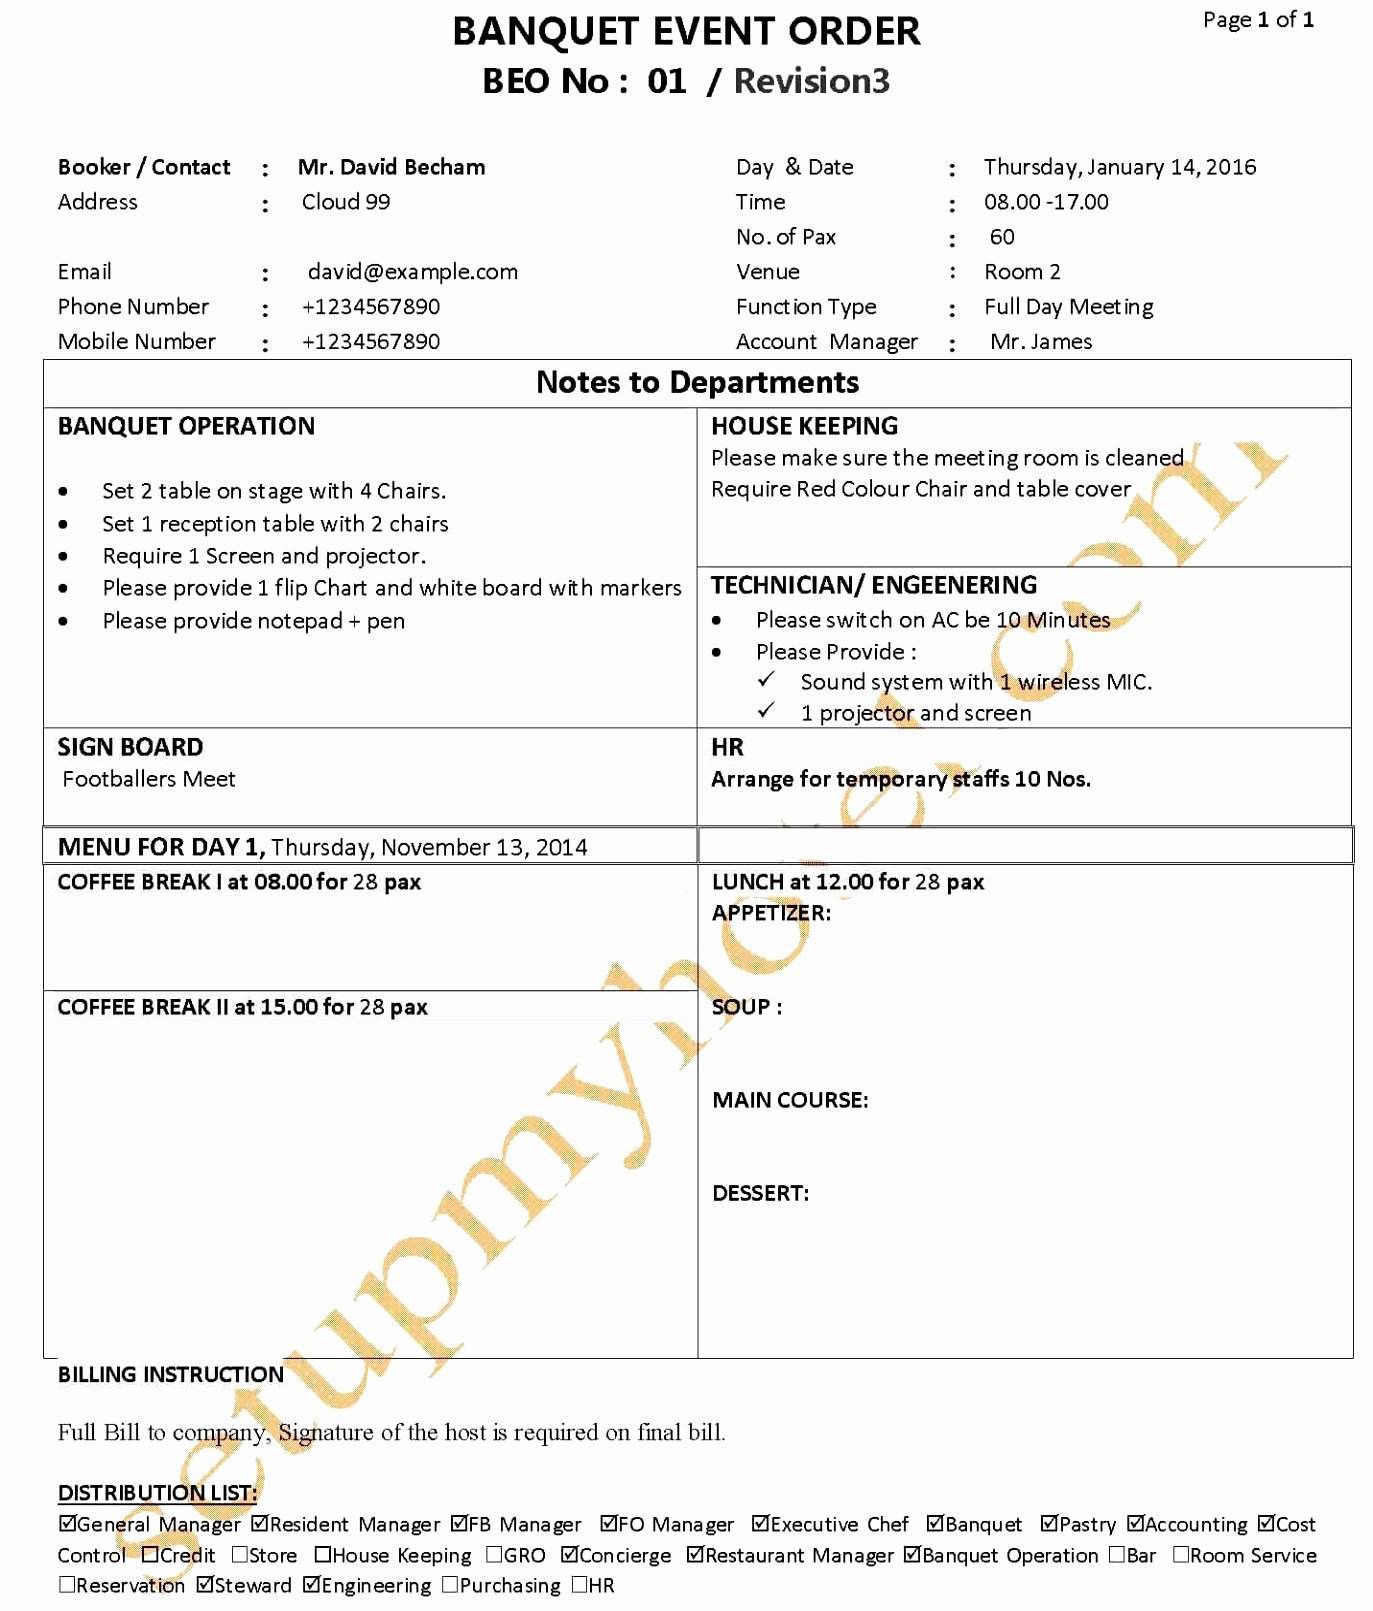 Banquet event order Template New order Template – 20 Free Word Excel Pdf Documents Download